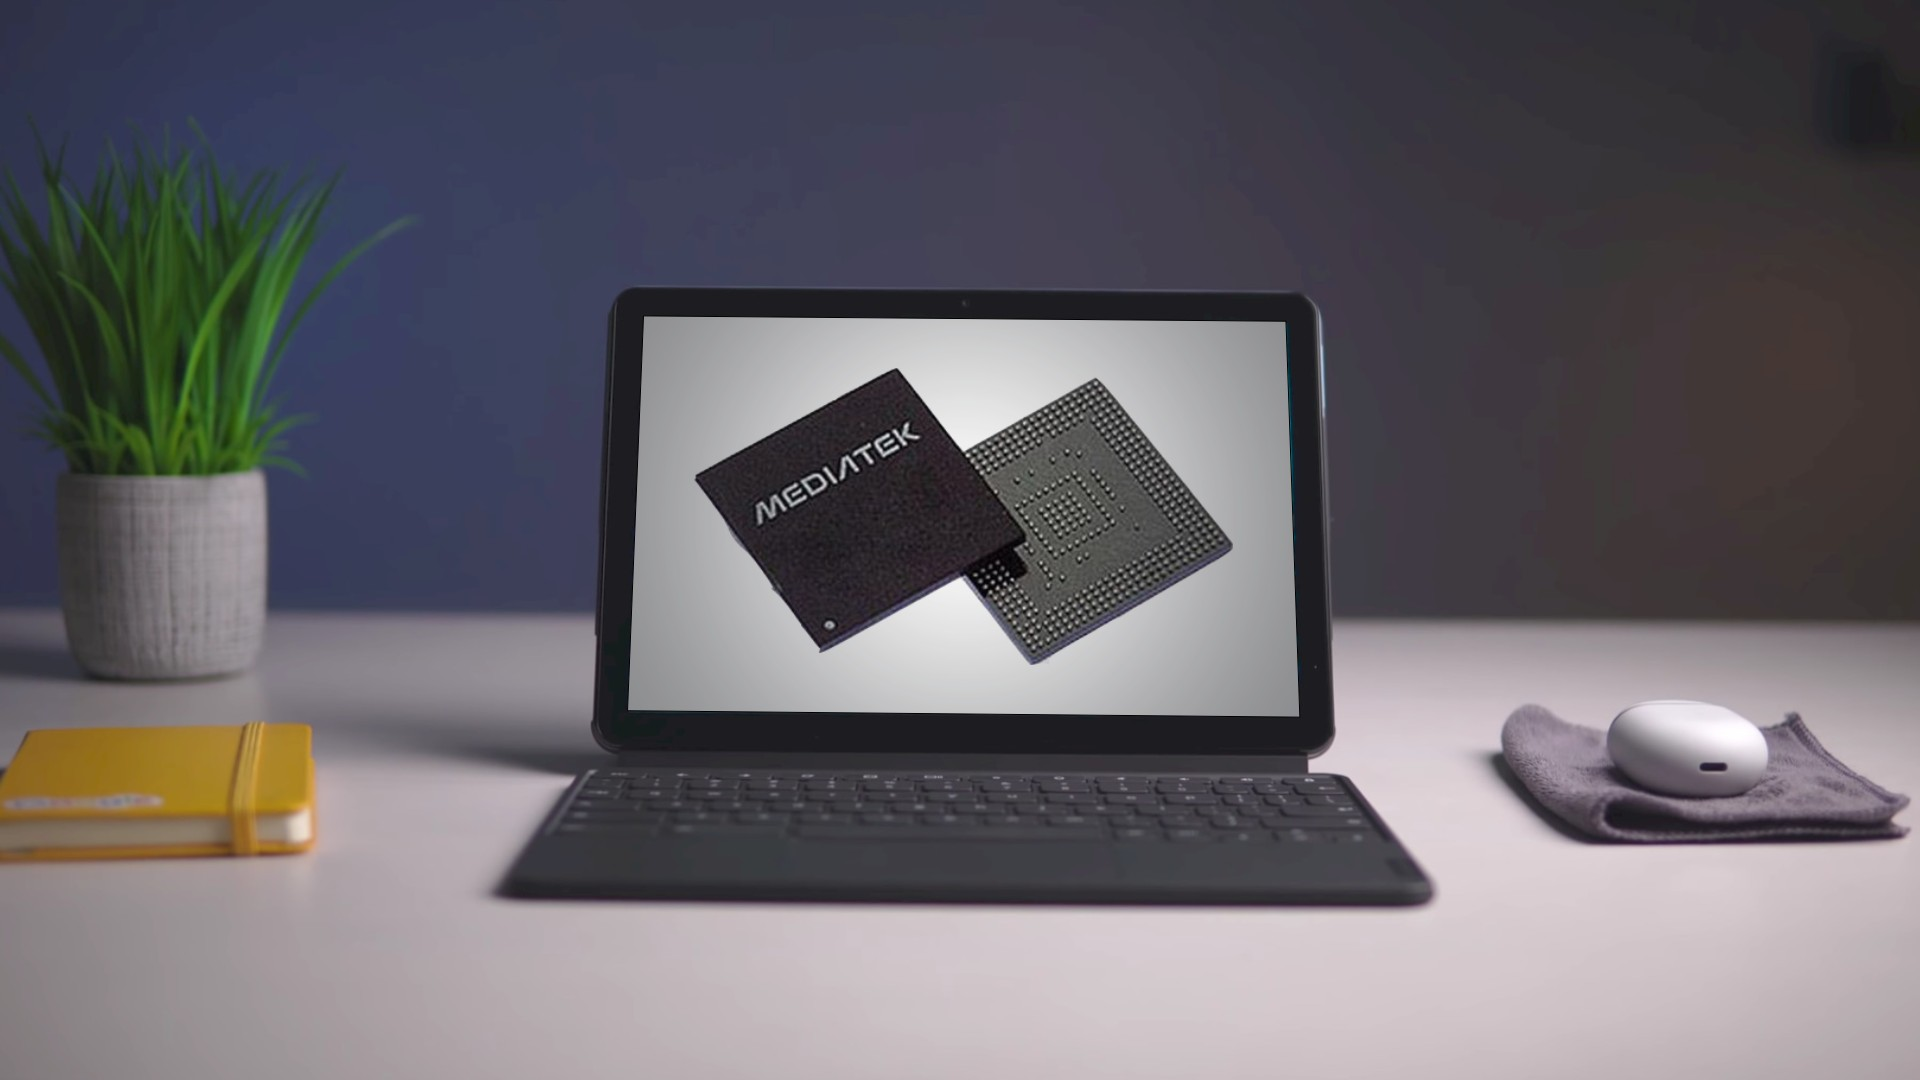 Another next-gen MediaTek ARM Chromebook begins development